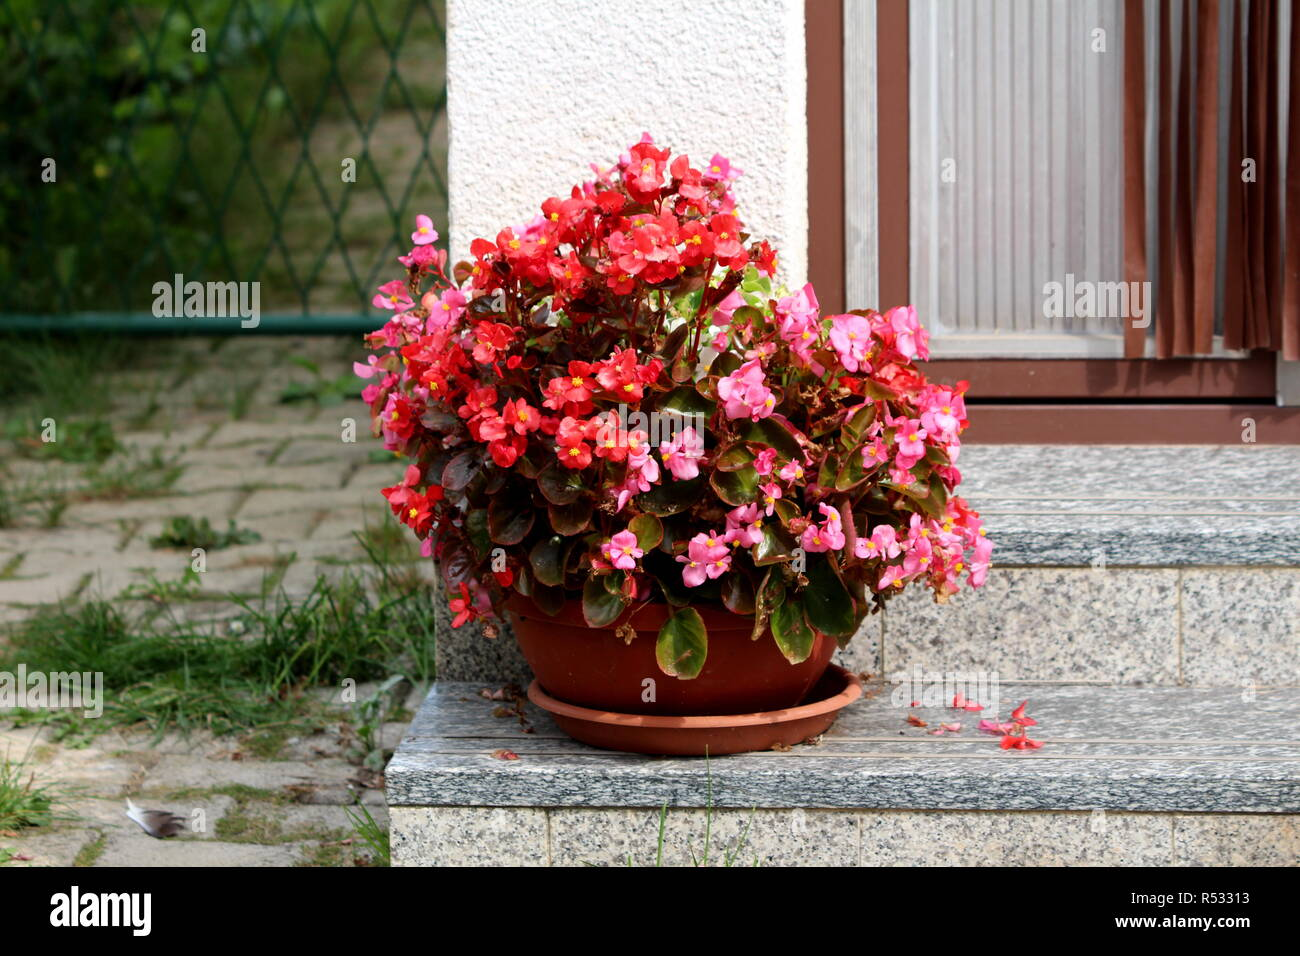 Flower pot with Begonia plants with green to reddish brown leaves and bright red and violet flowers with yellow center on marble steps - Stock Image